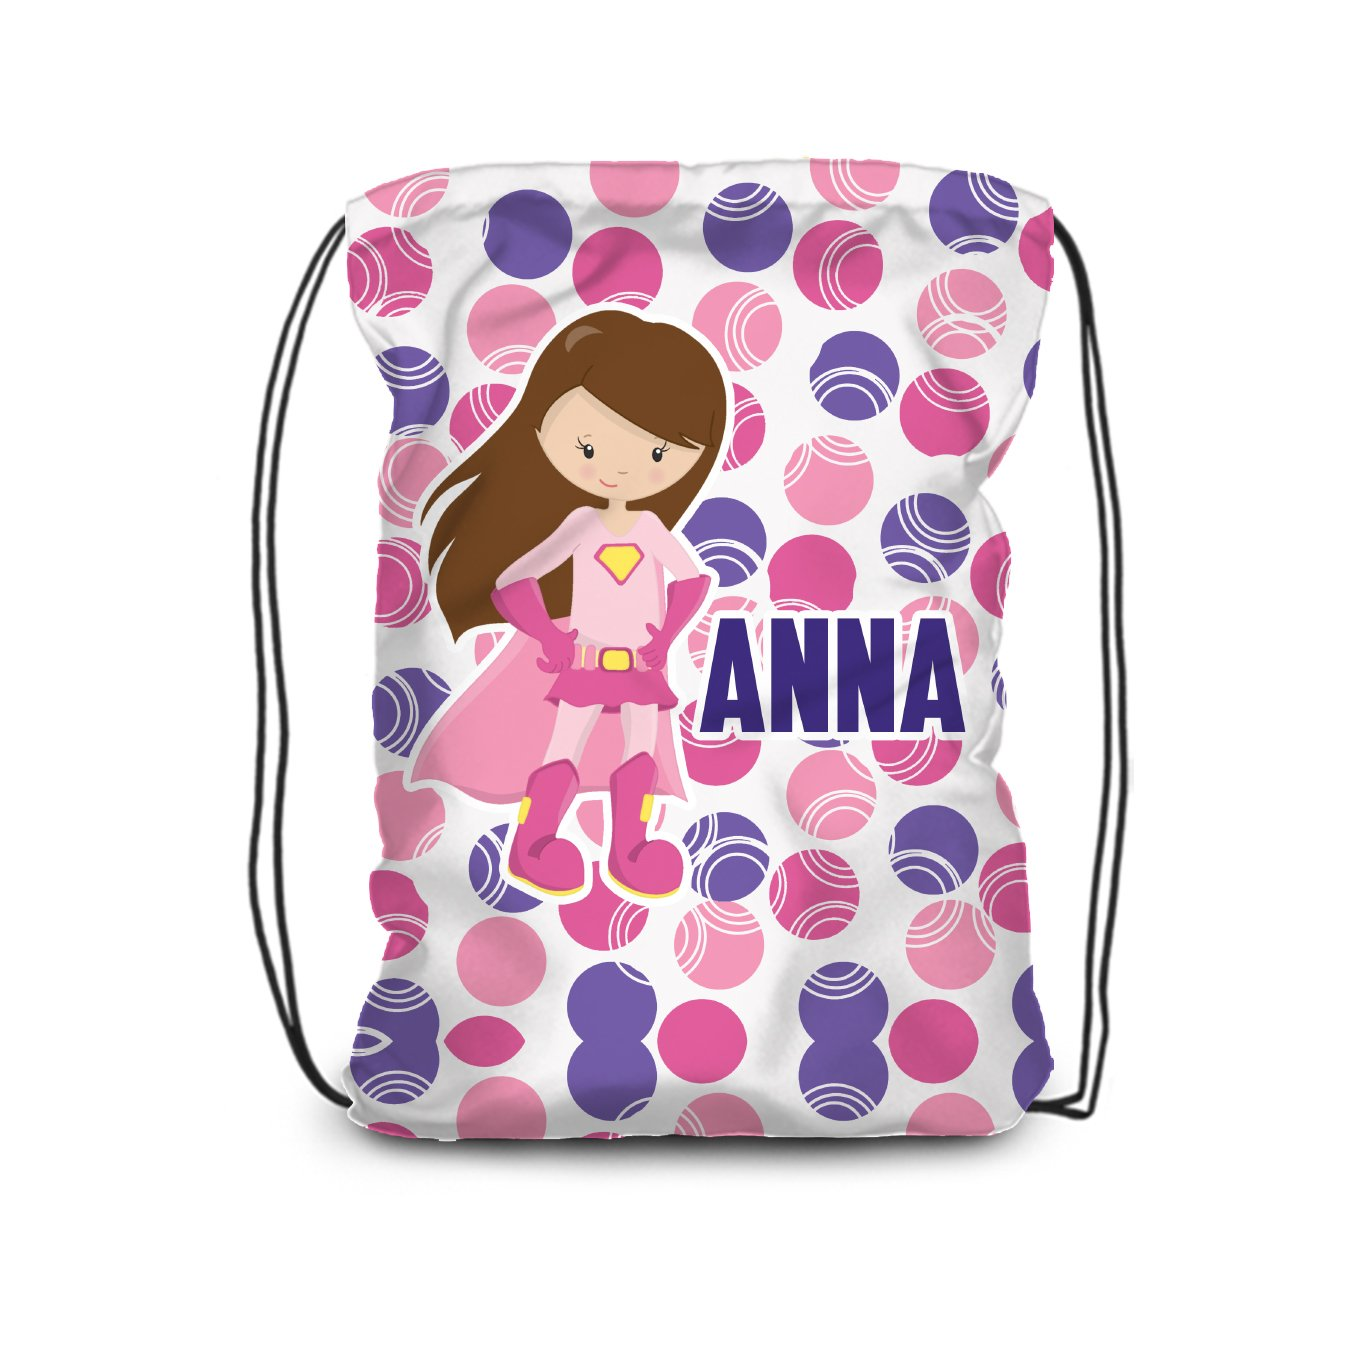 Superhero Drawstring Backpack - Pink Purple Girl Perso Sale Gorgeous SALE% OFF